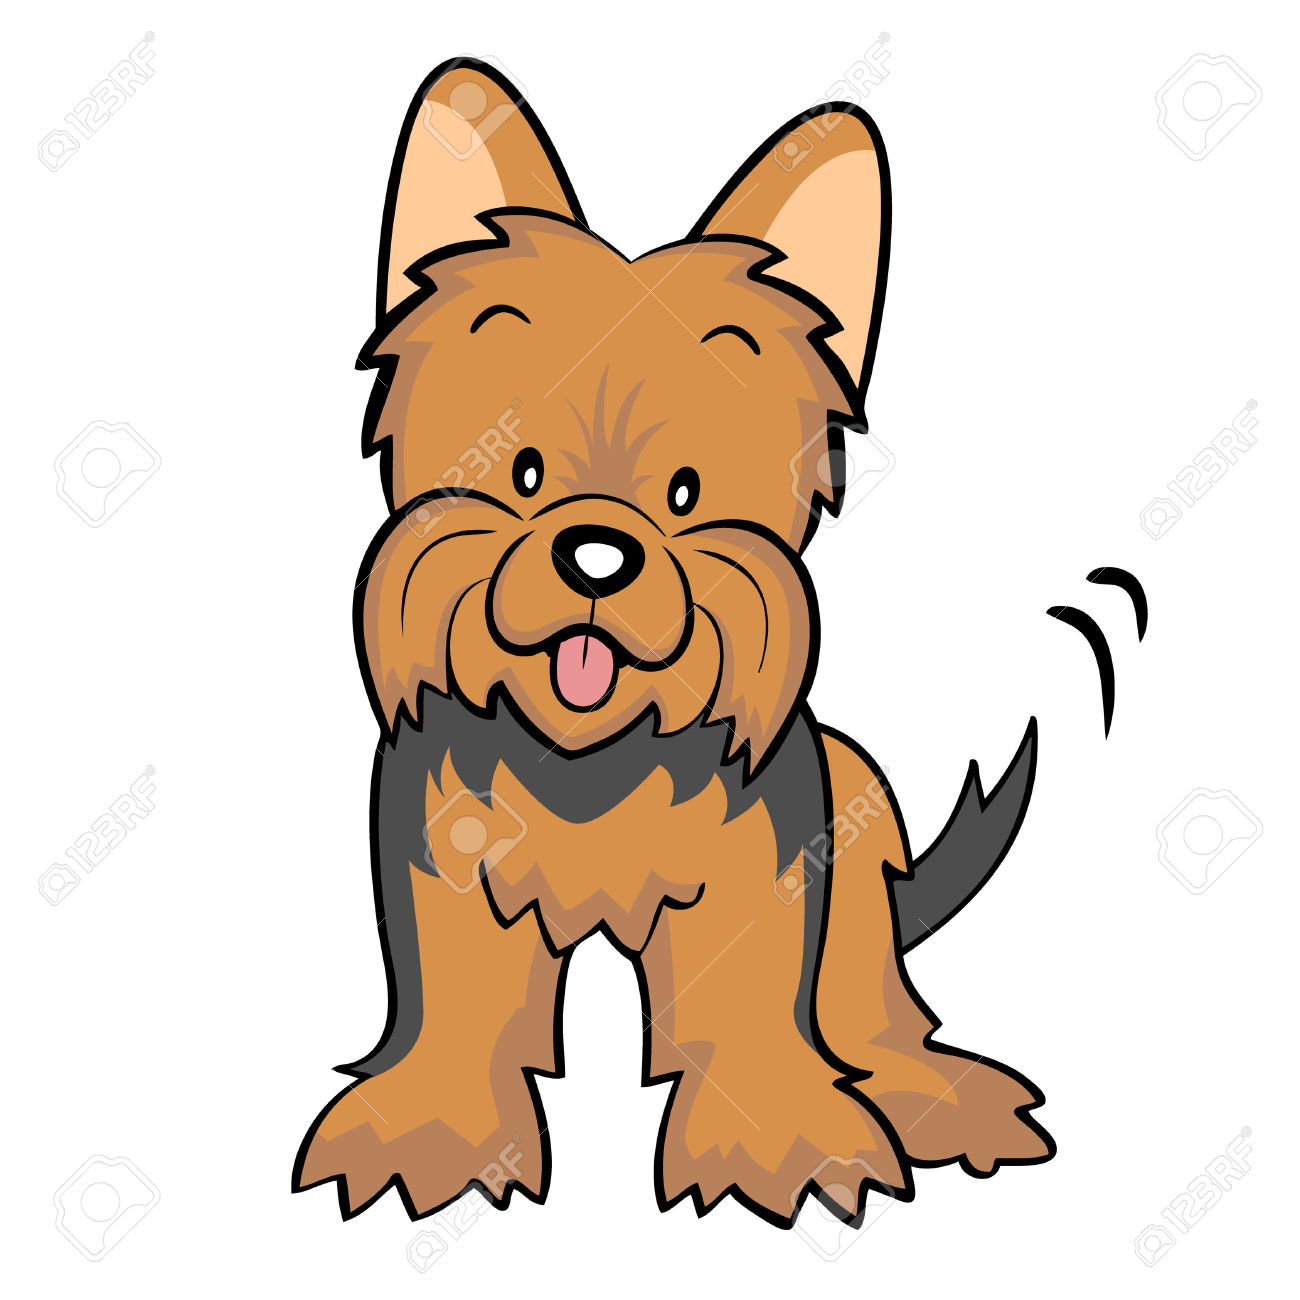 699 Yorkshire Terrier Stock Vector Illustration And Royalty Free.